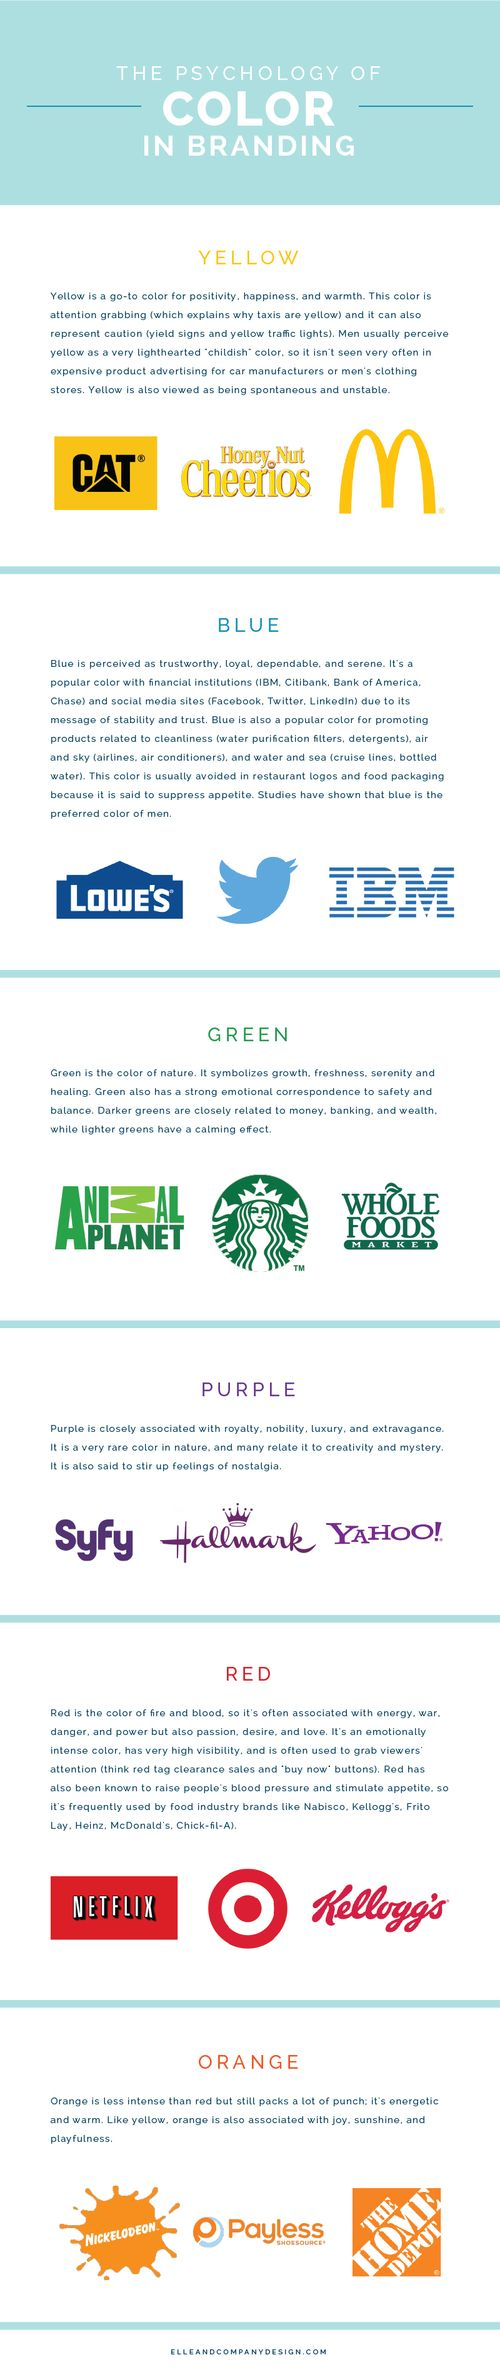 Design is all about first impressions, and one of the most important factors of any design is color. Color choices, pairings, and usage can affect how someone perceives a billboard, a website, or a box of cereal. Whether you realize it or not, colors evoke emotions, feelings, and memories, and designers tap into those emotions as they're choosing colors to appeal to a brand's ideal audience. There is more psychology behind color than you may have imagined, so today I'm sharing some col...